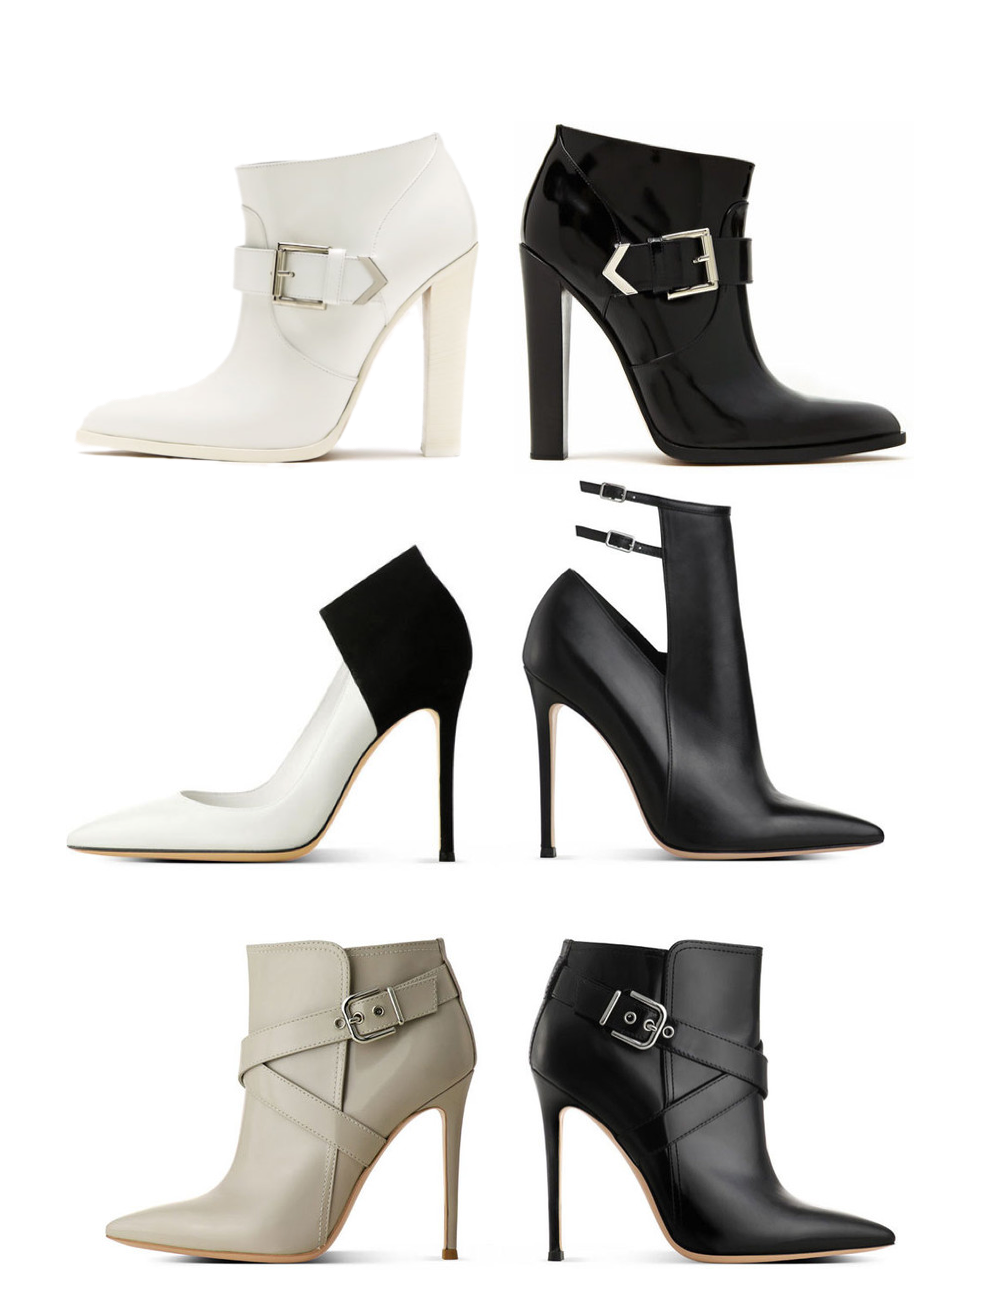 Black and white shoes FW13 - Altuzarra, Gianvito Rosso